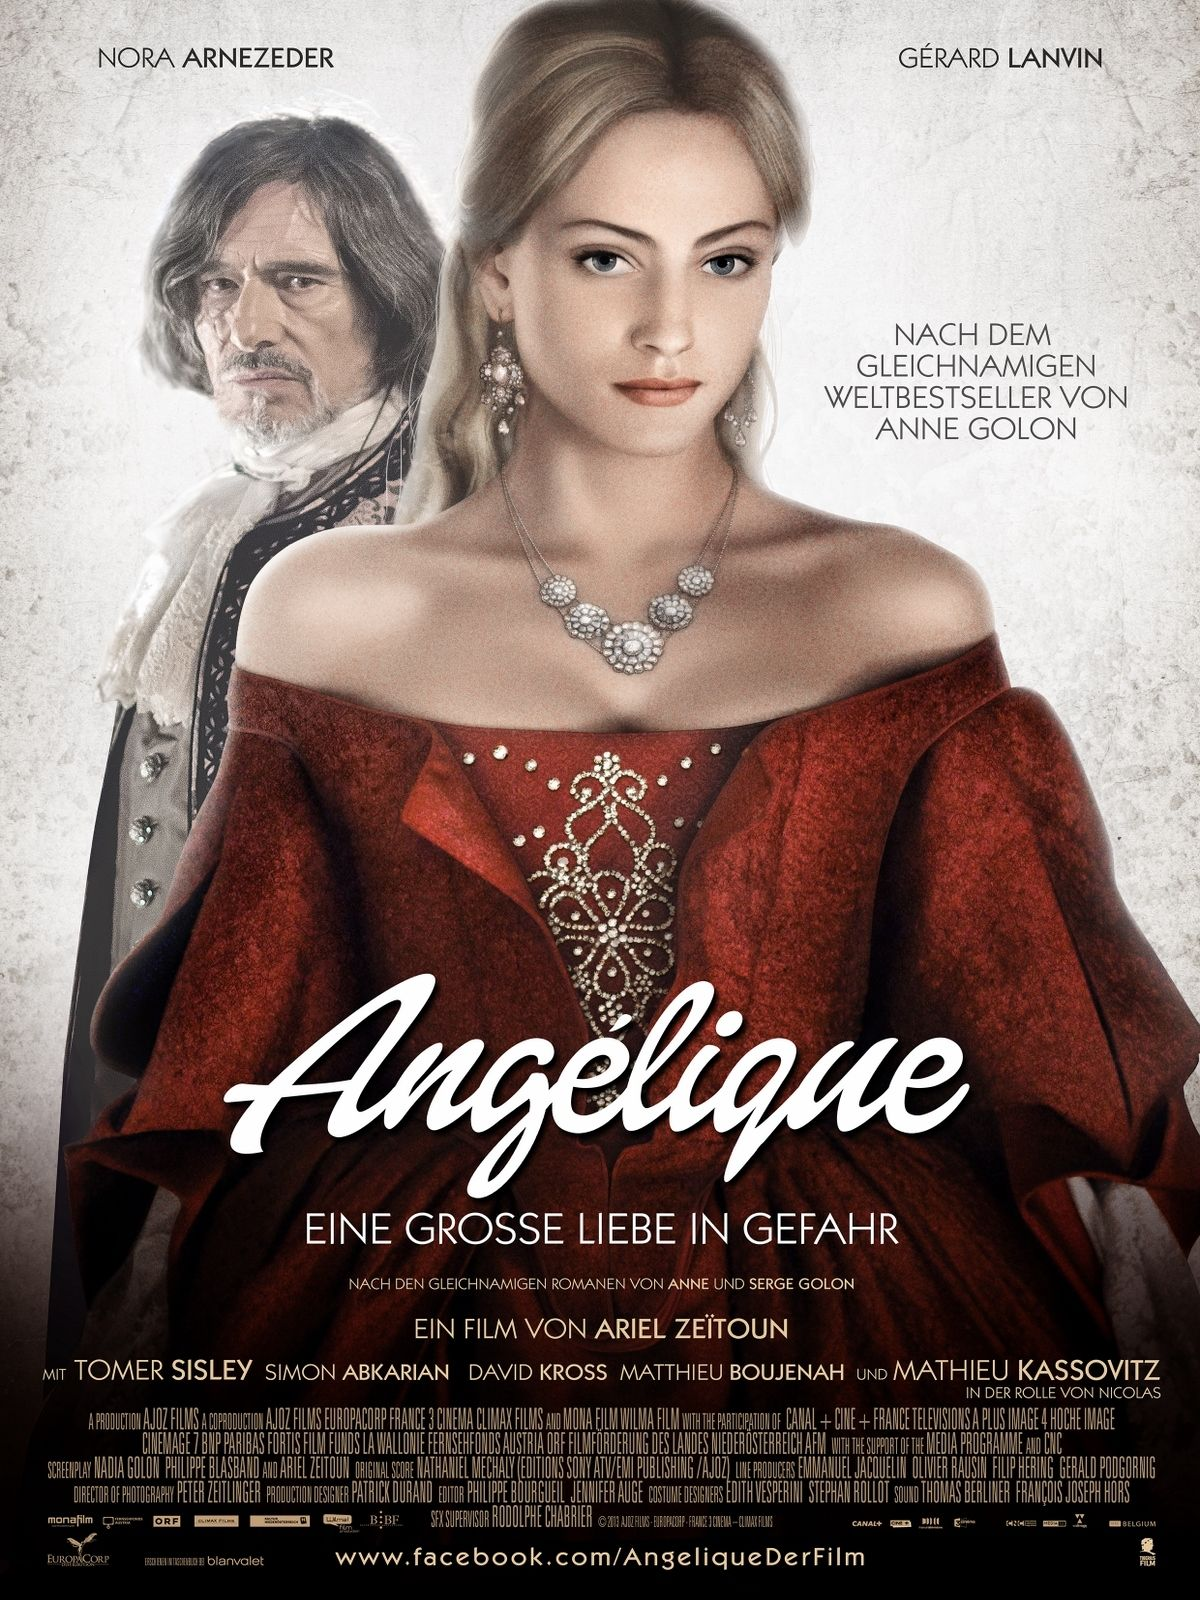 Angelique - film 2013 | Film Afişleri, Movie Posters | Pinterest ...